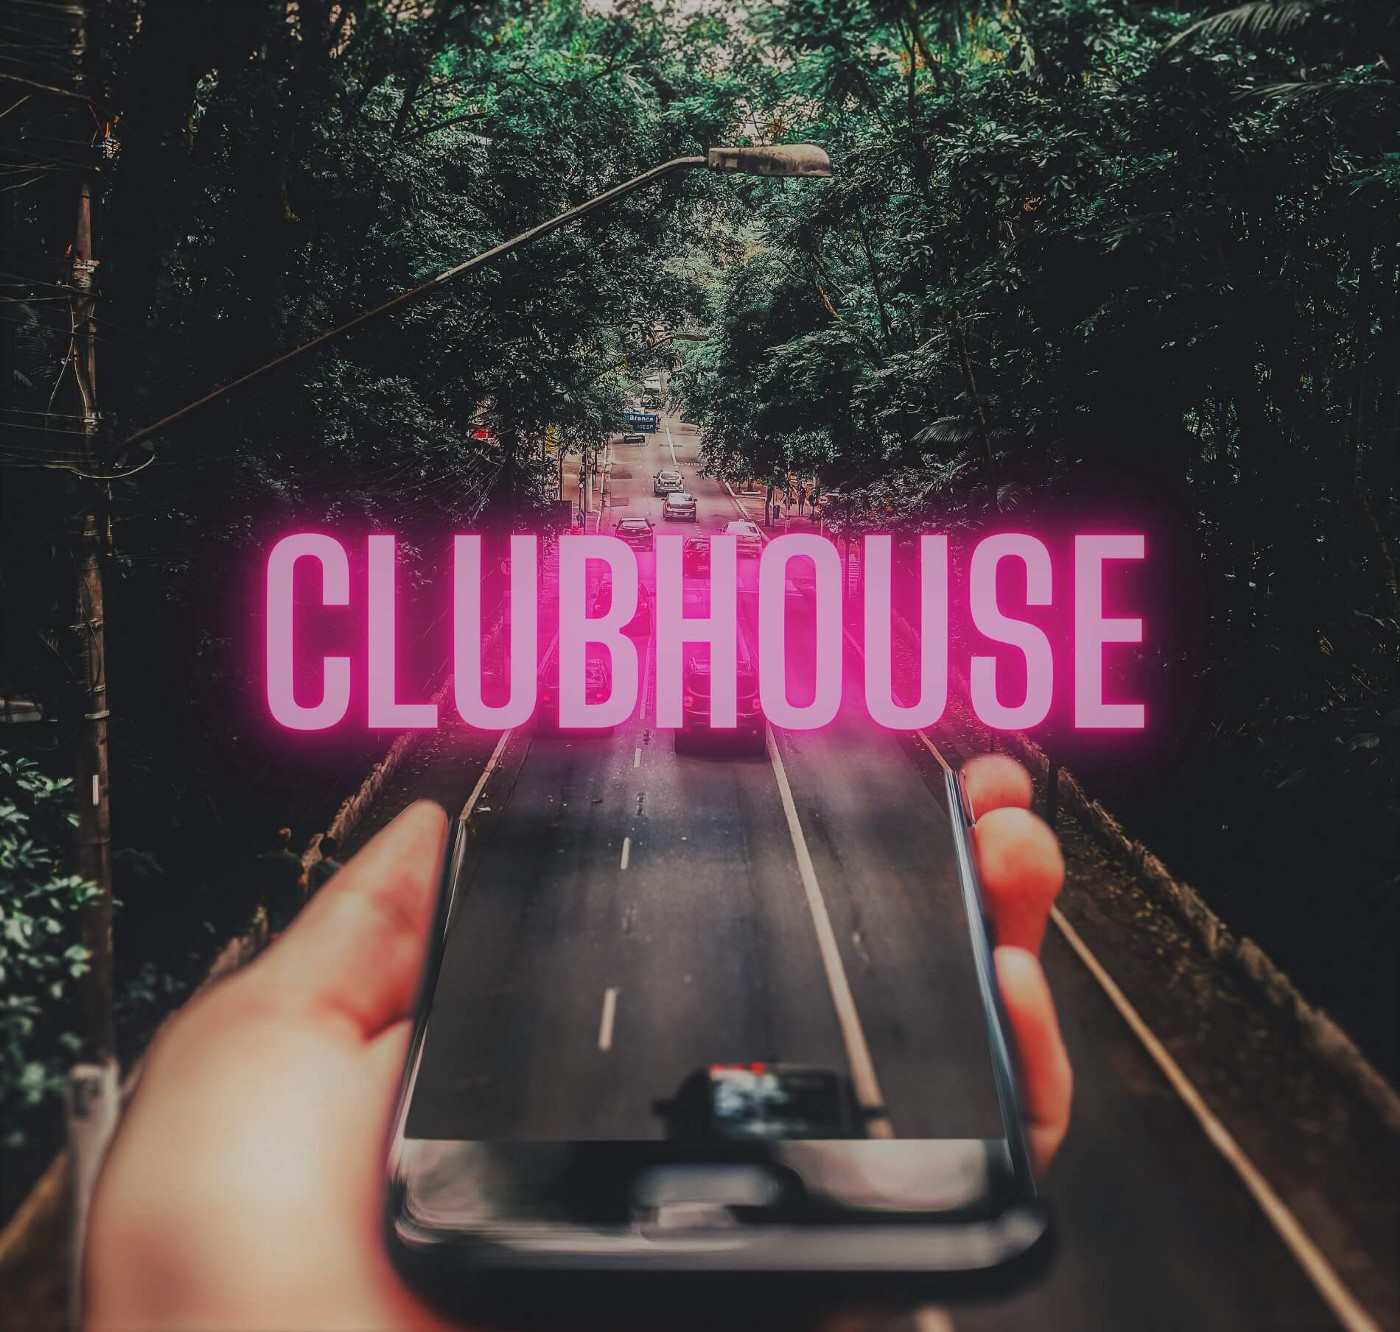 Pink lettering mentioning clubhouse on a background showing a smartphone that transforms into an open road to depict the marketing potential of social media.